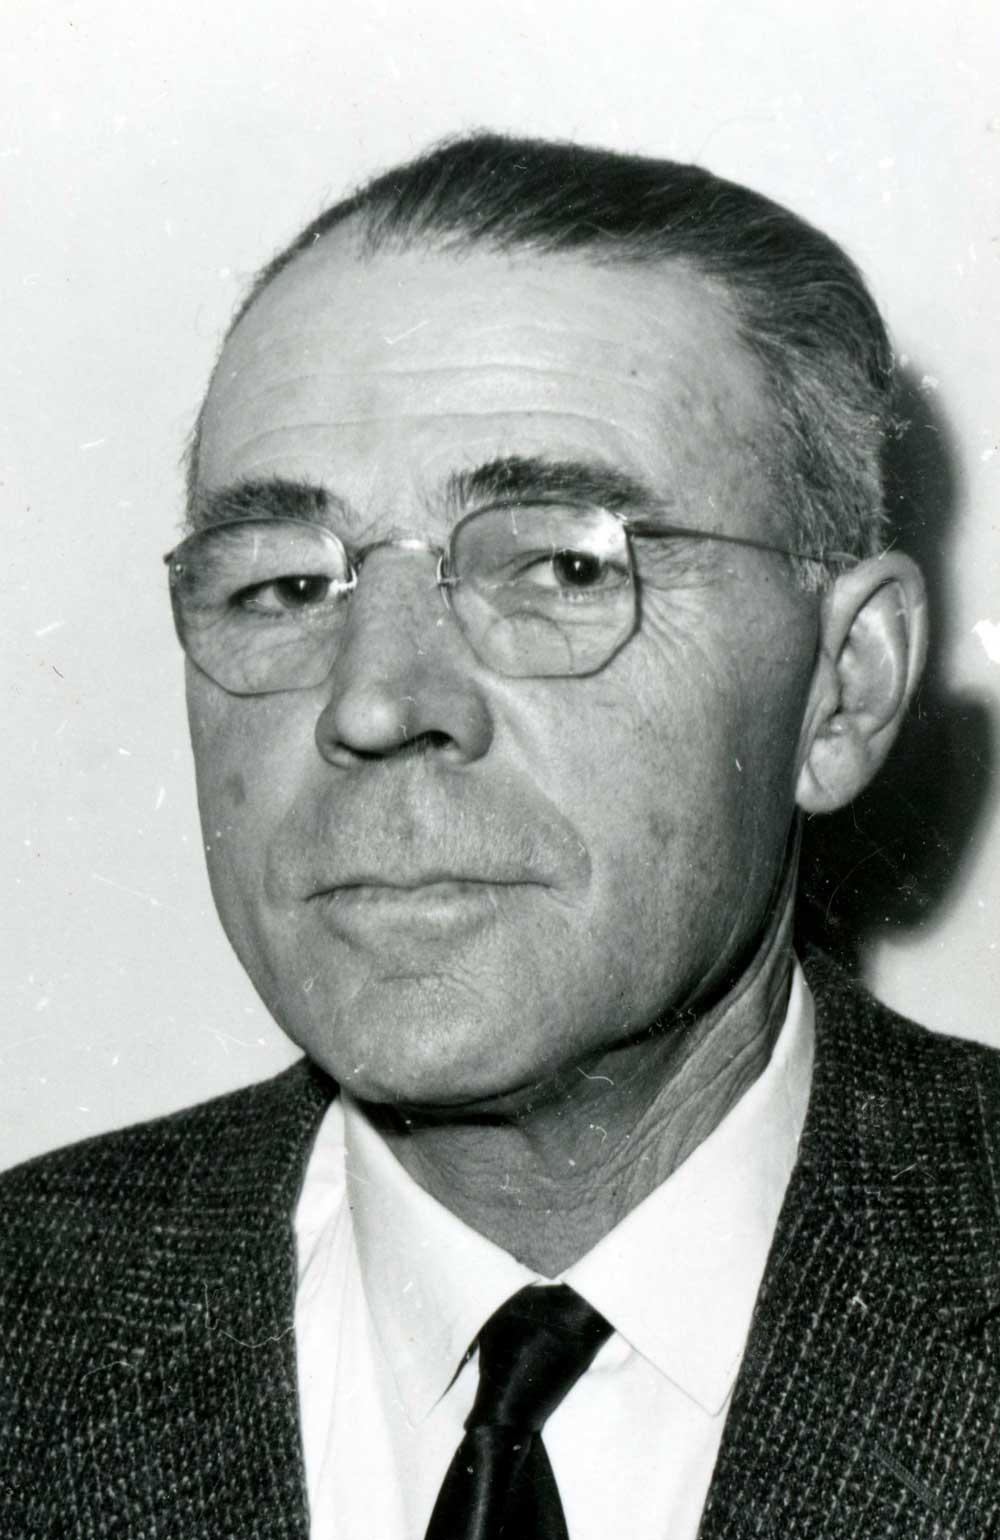 1963 portrait of Robert P. Haan, who was the chairman of the McBride and District Hospital Board of Directors.